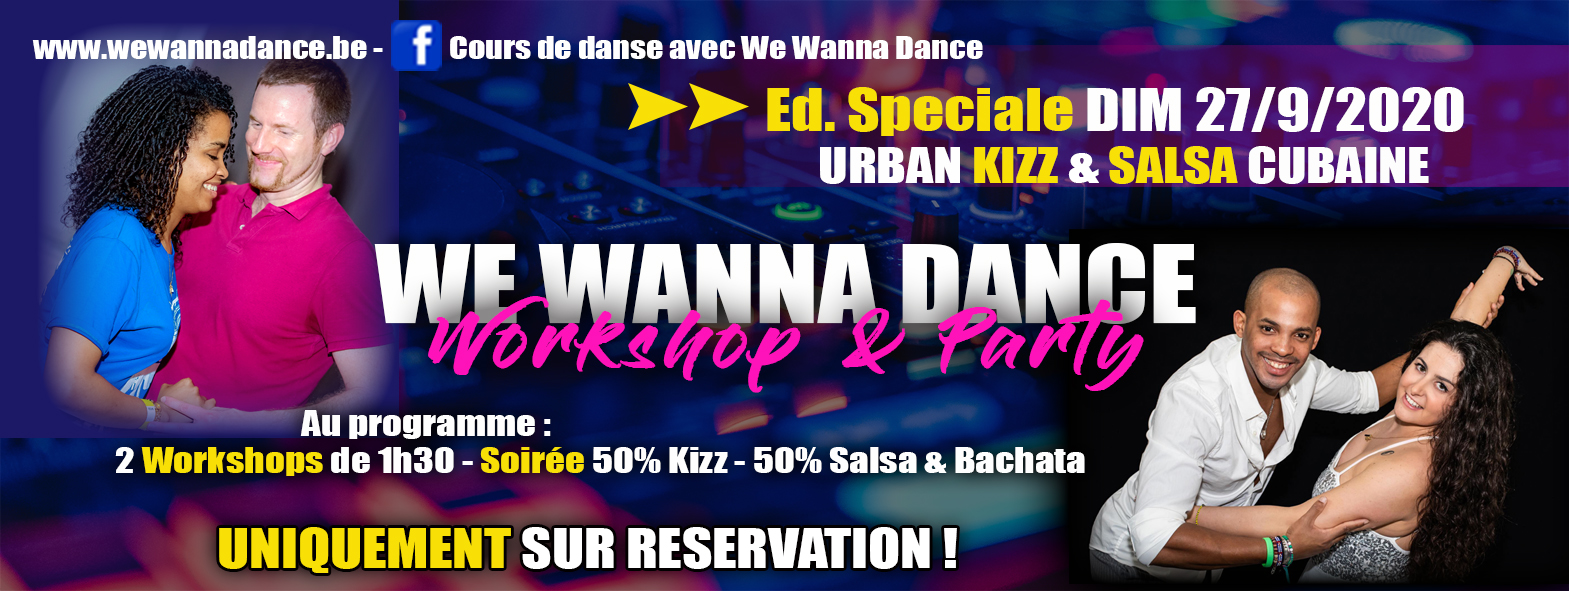 Workshop & Party - Ed. Spéciale Urban Kizz & Salsa Cubaine